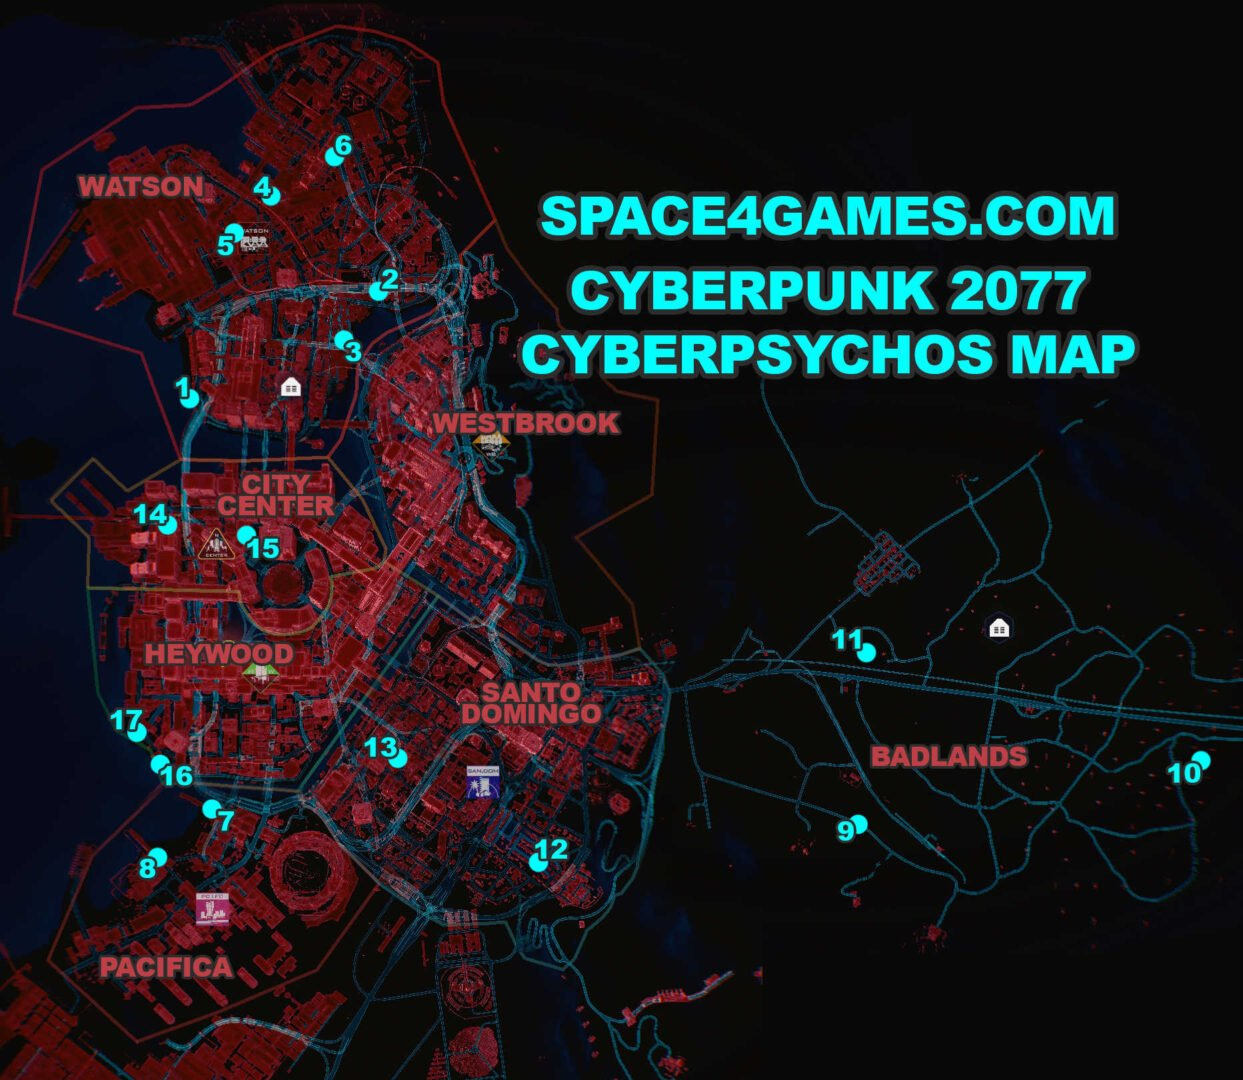 Cyberpunk 2077 Cyberpsycho Guide Locations of all Cyberpsychos Map